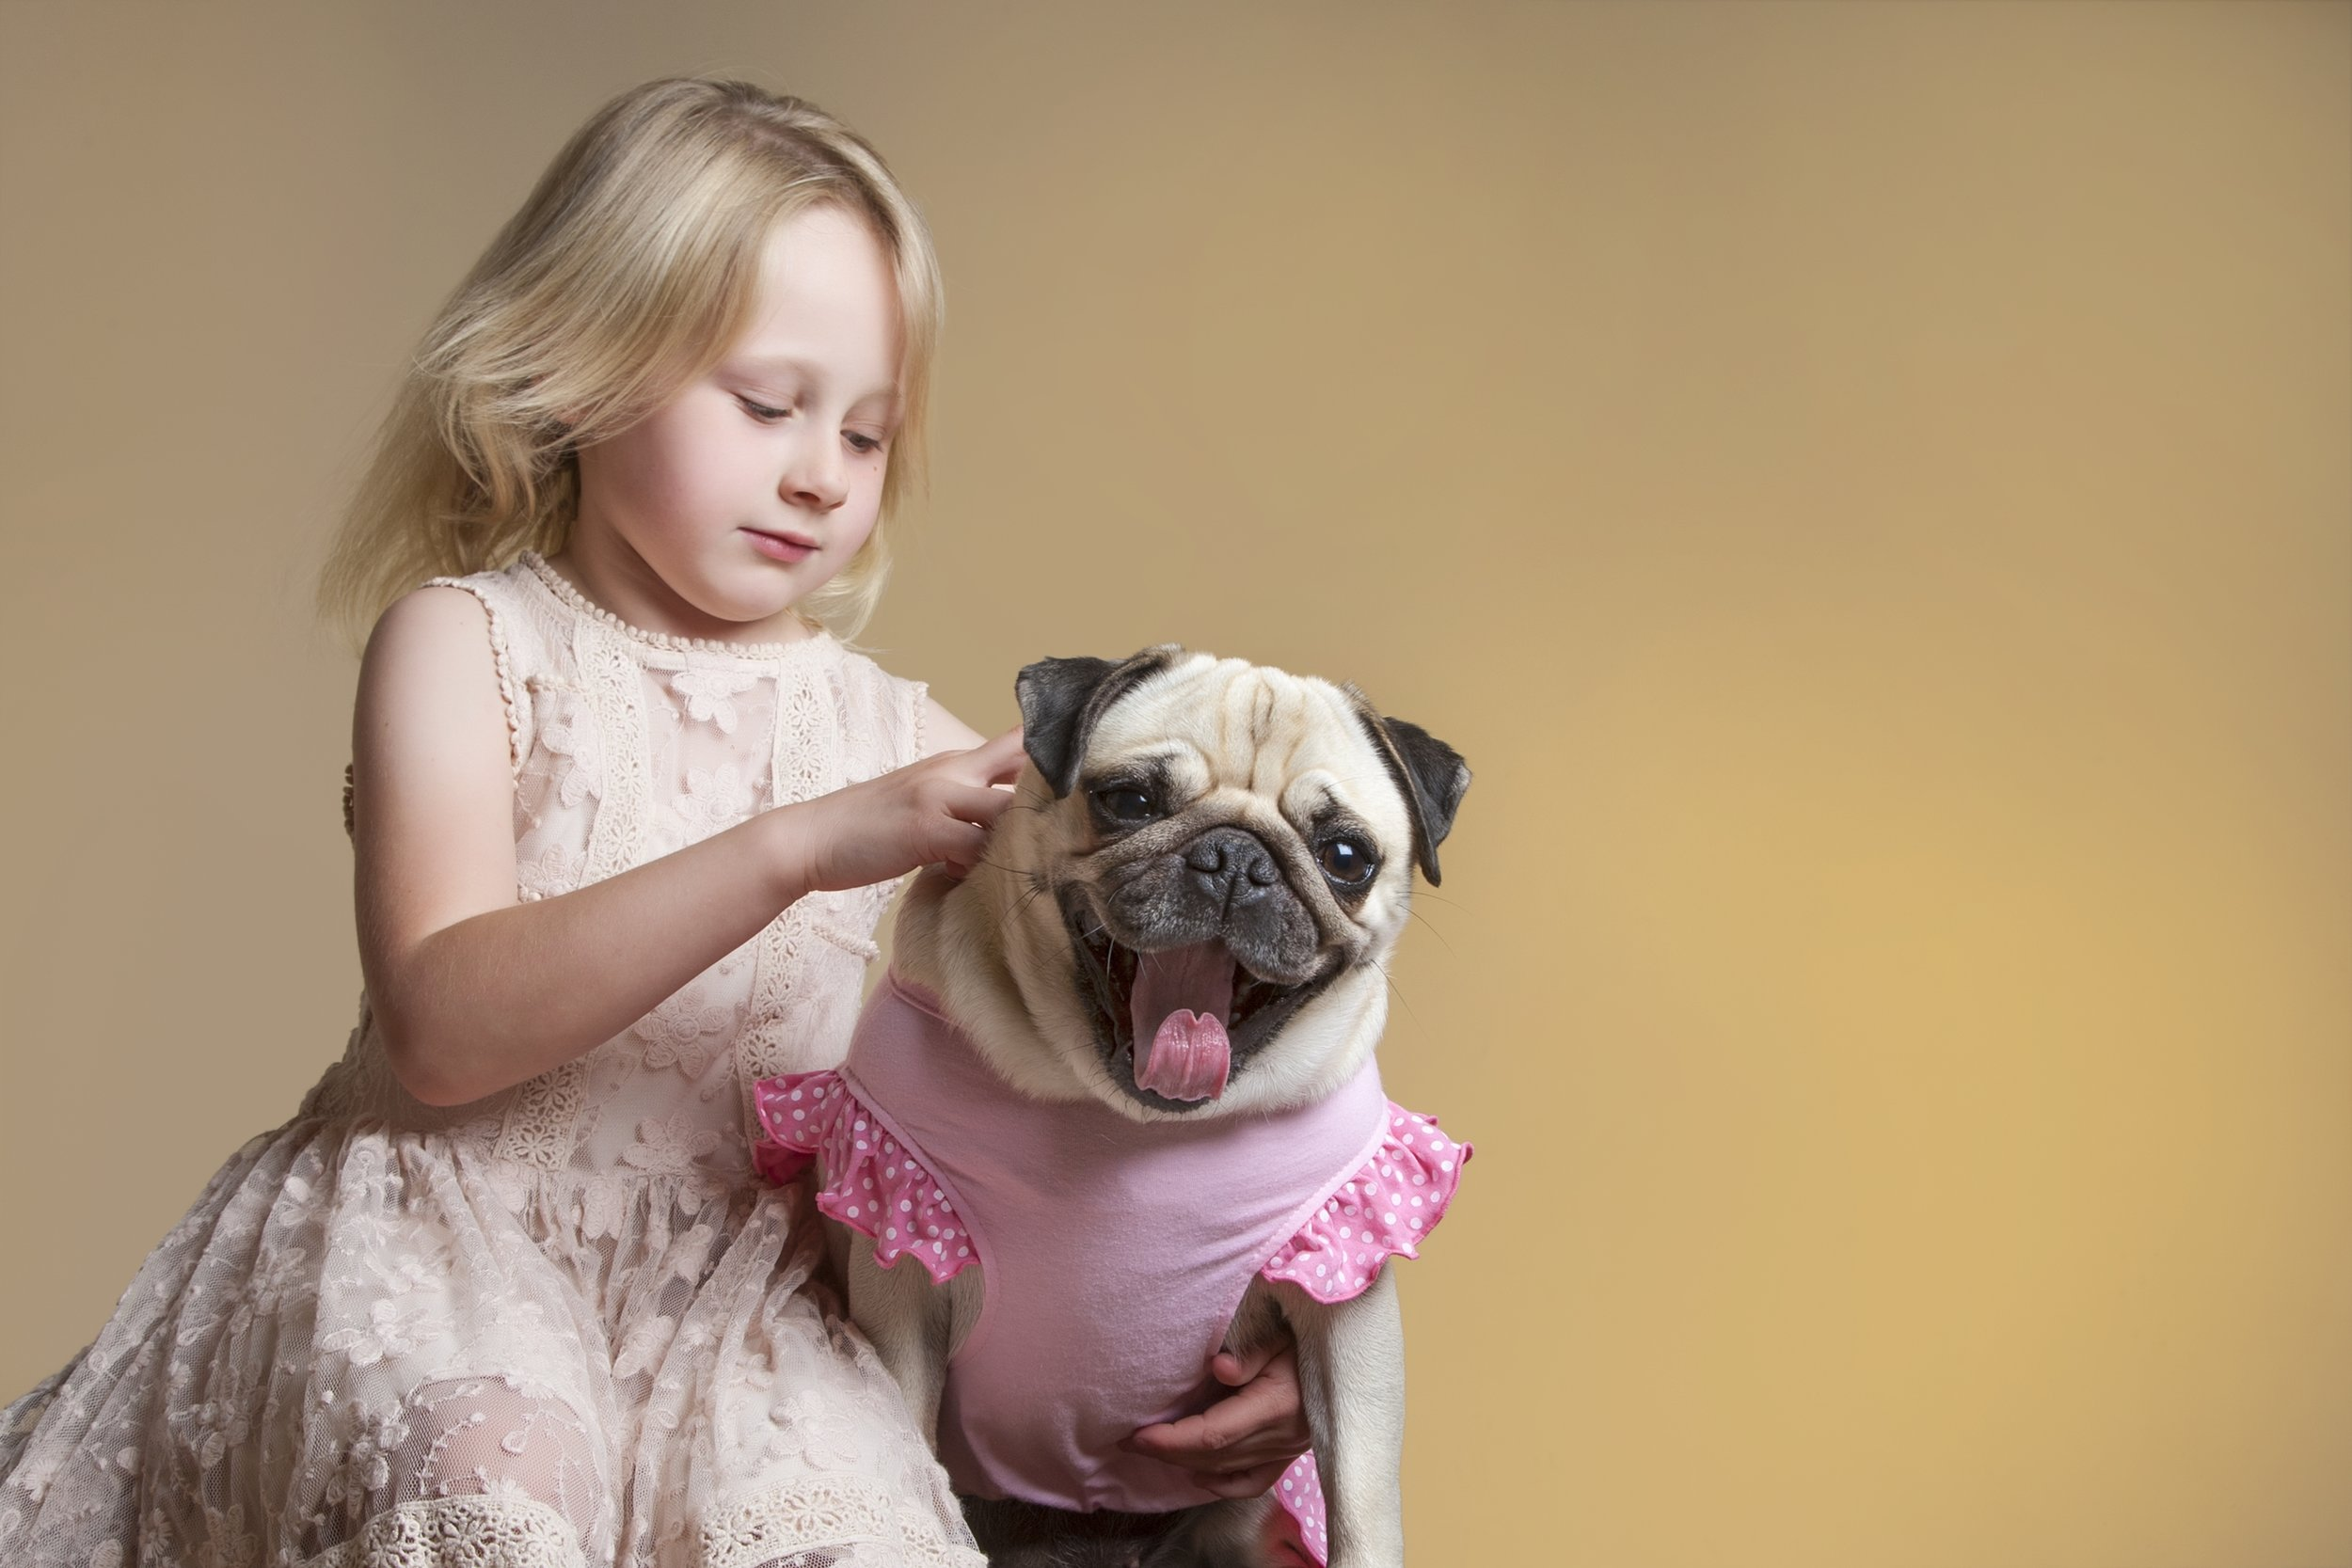 zigzag-photography-leicester-zig-zag-photographers-photo-studio-clarendon-park-queens-road-best-family-portraits-children-dog-dress-up-outfit-girl-animal-pet.jpg